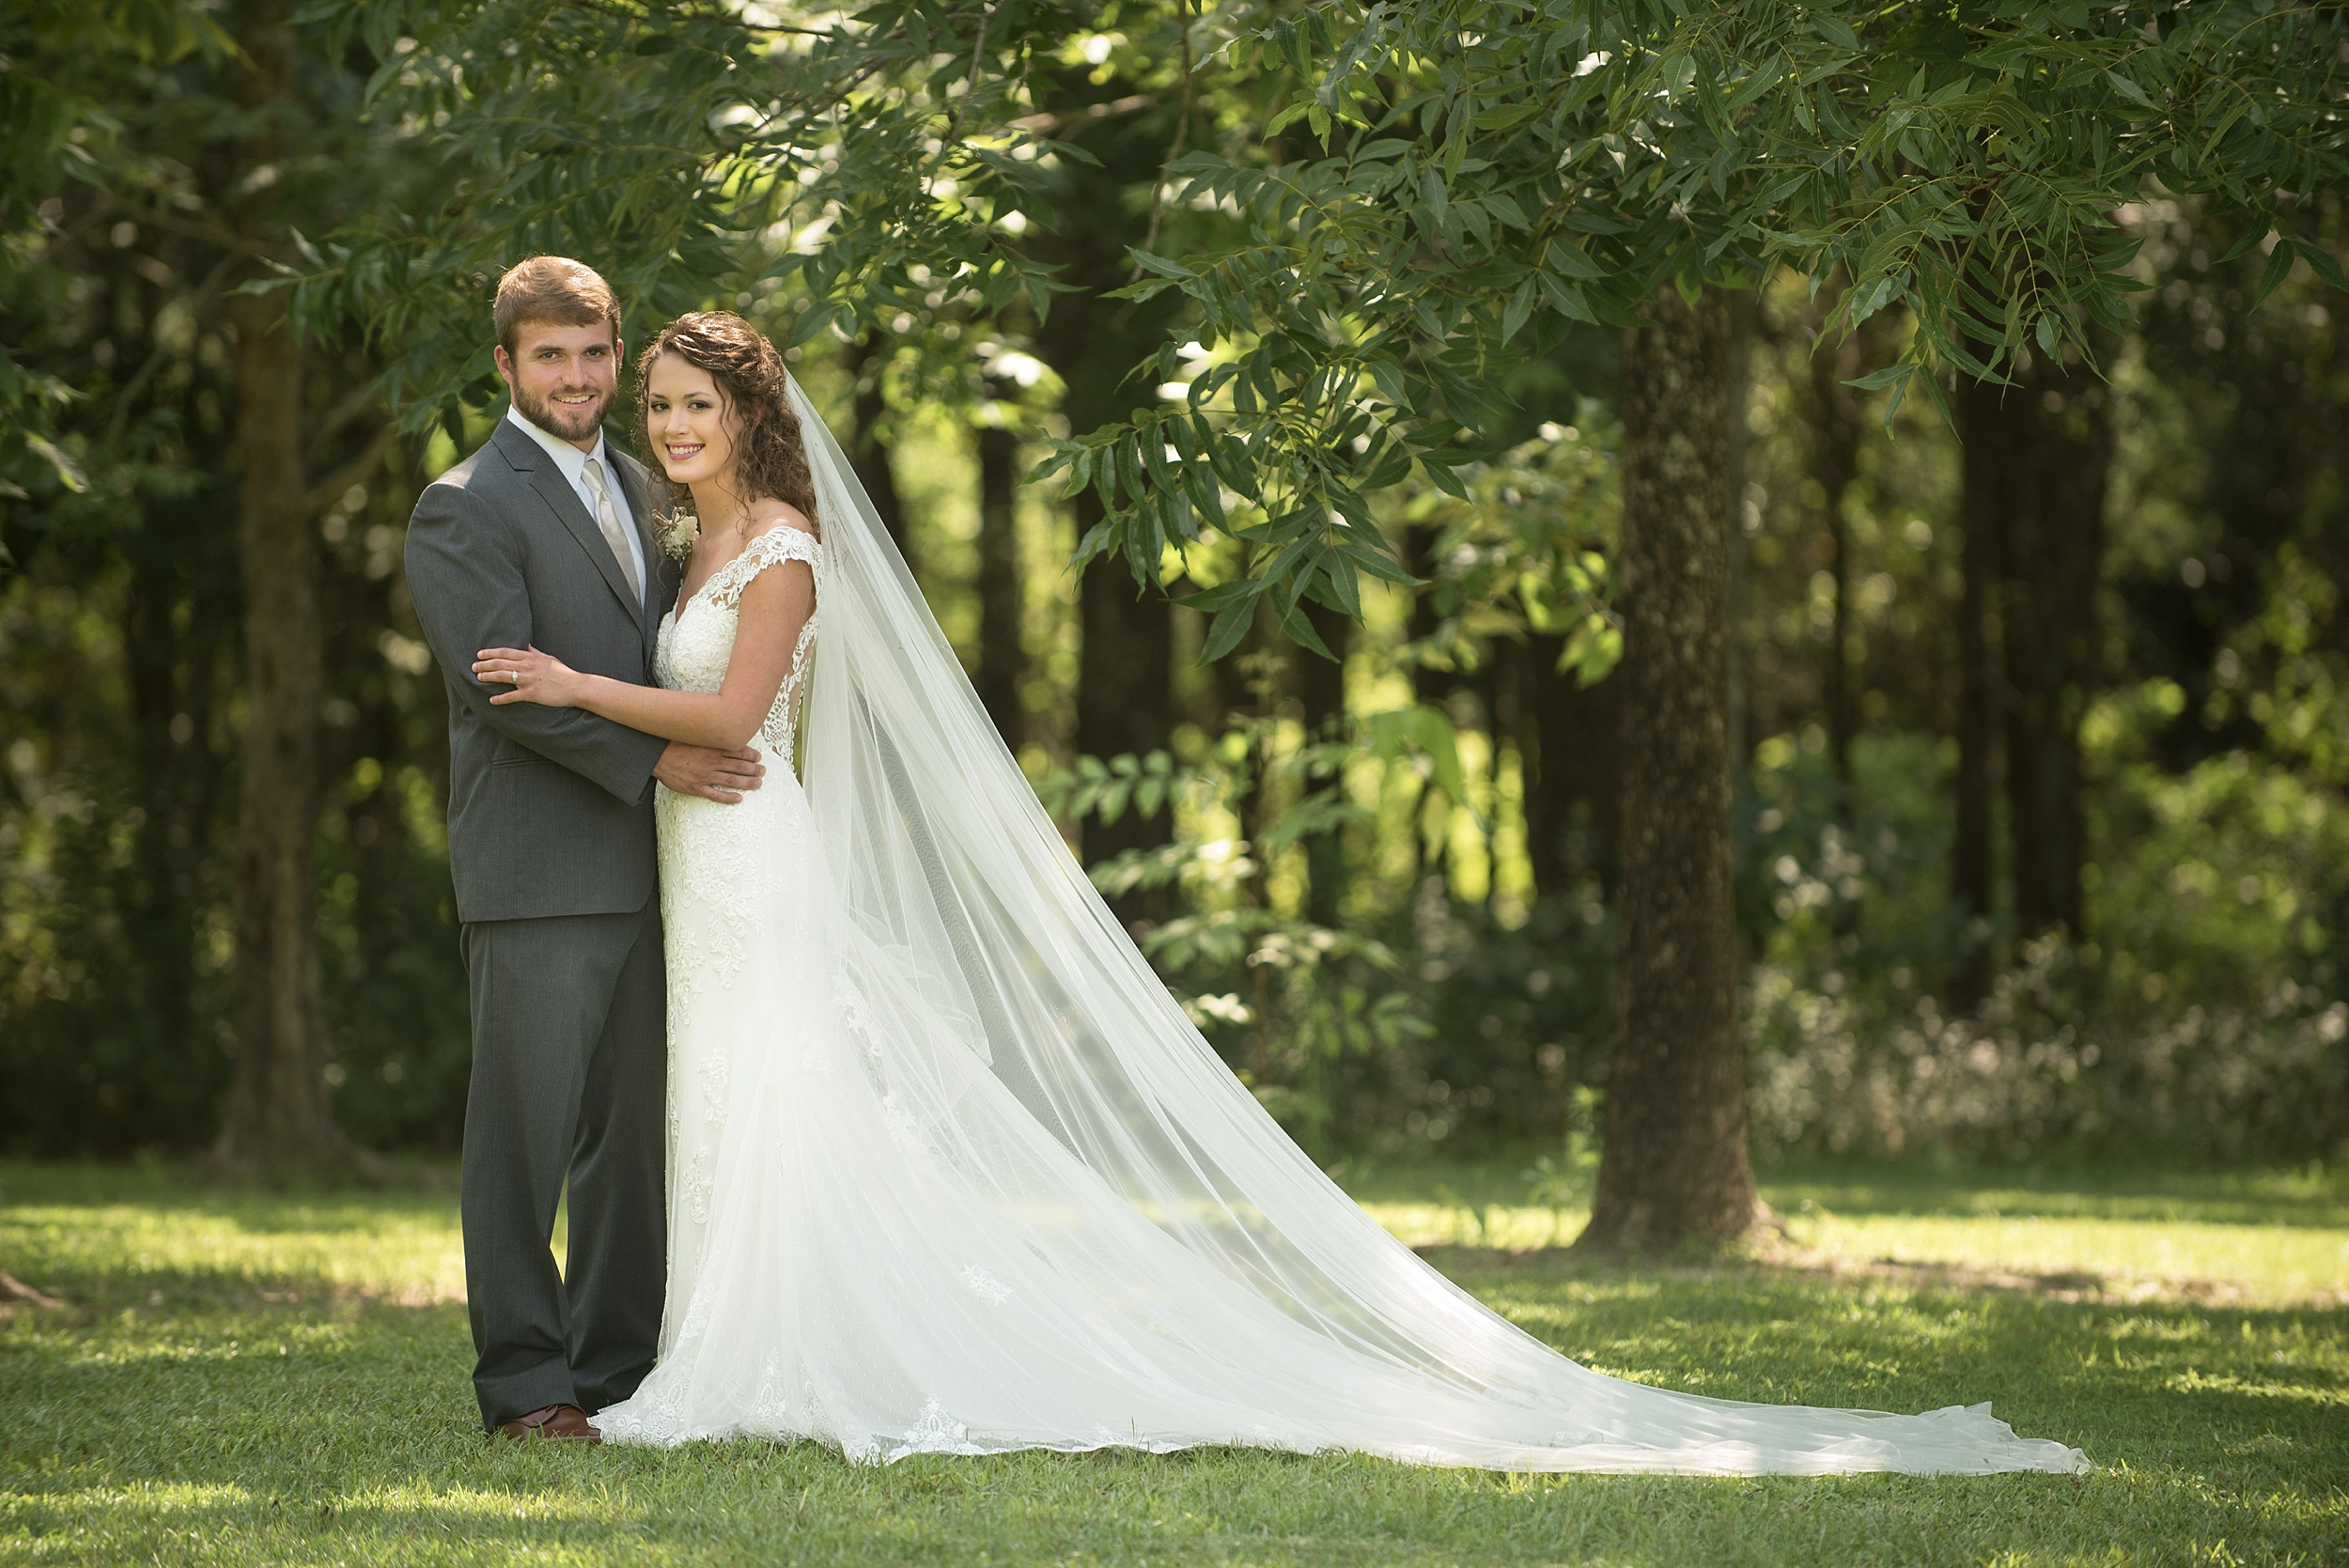 groom in gray tuxedo embraces bride in lace wedding dress with cathedral length veil